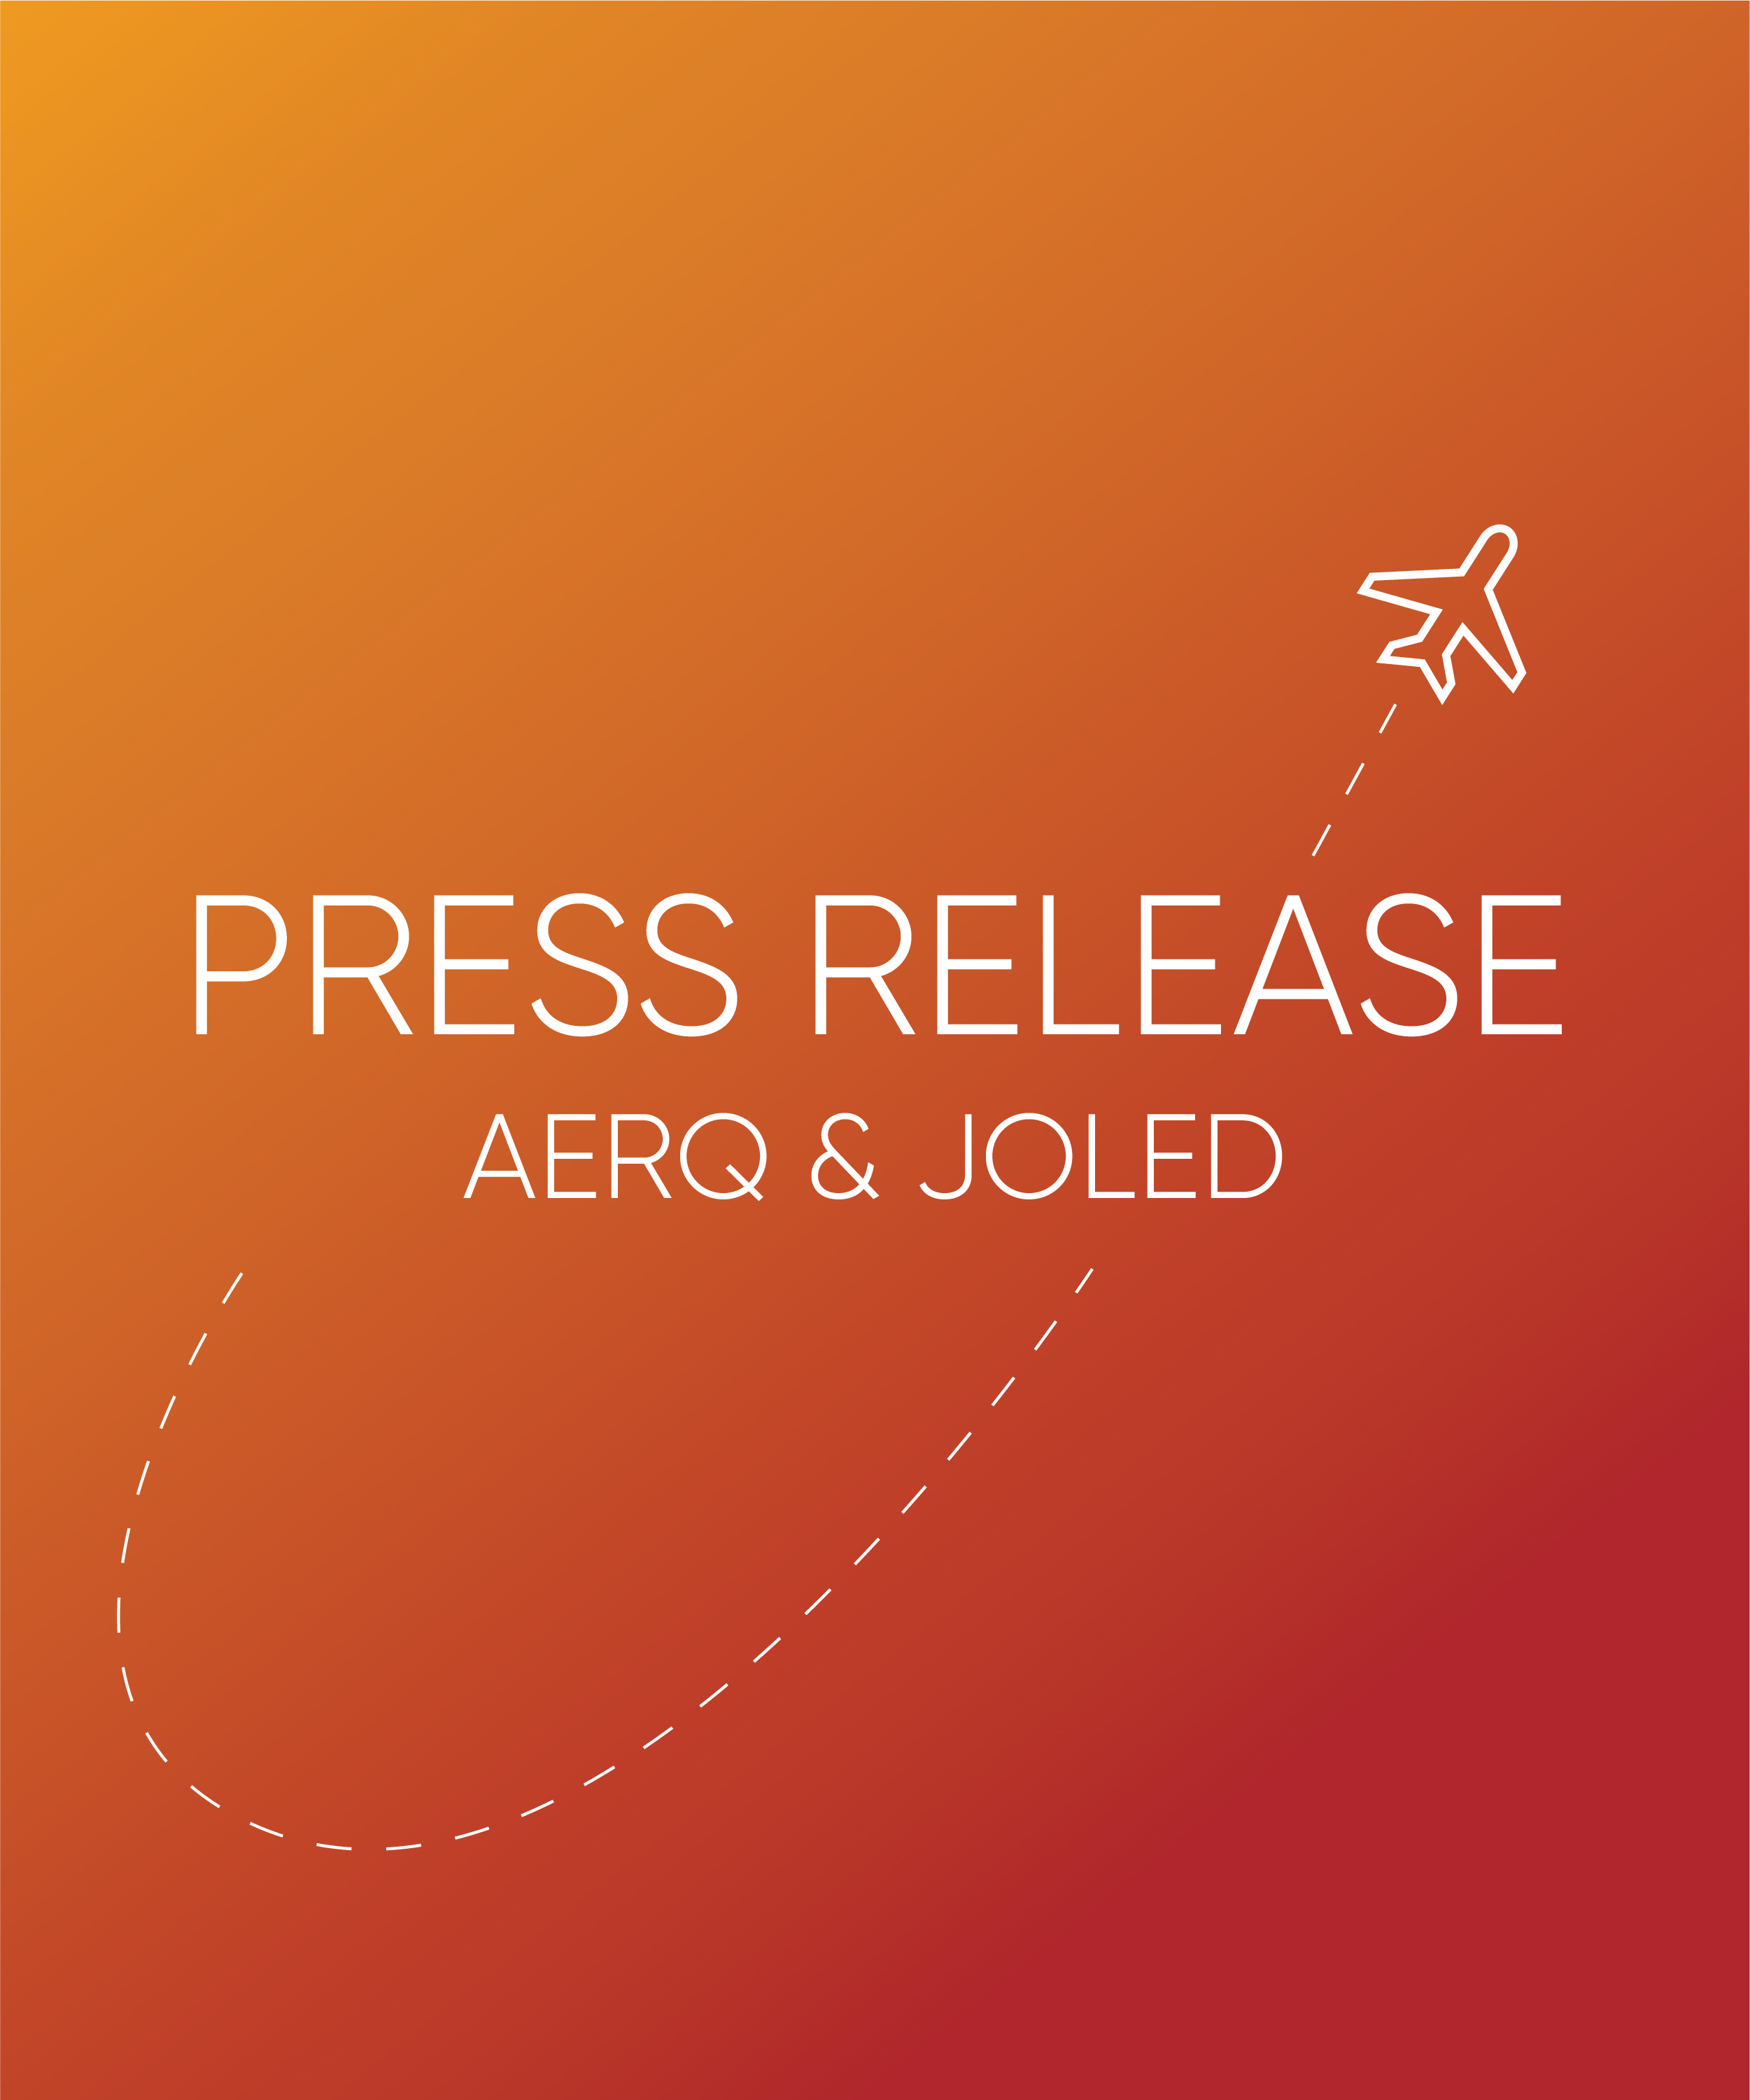 AERQ and JOLED collaborate on integrating medium-sized OLED Displays in Aircraft Cabins